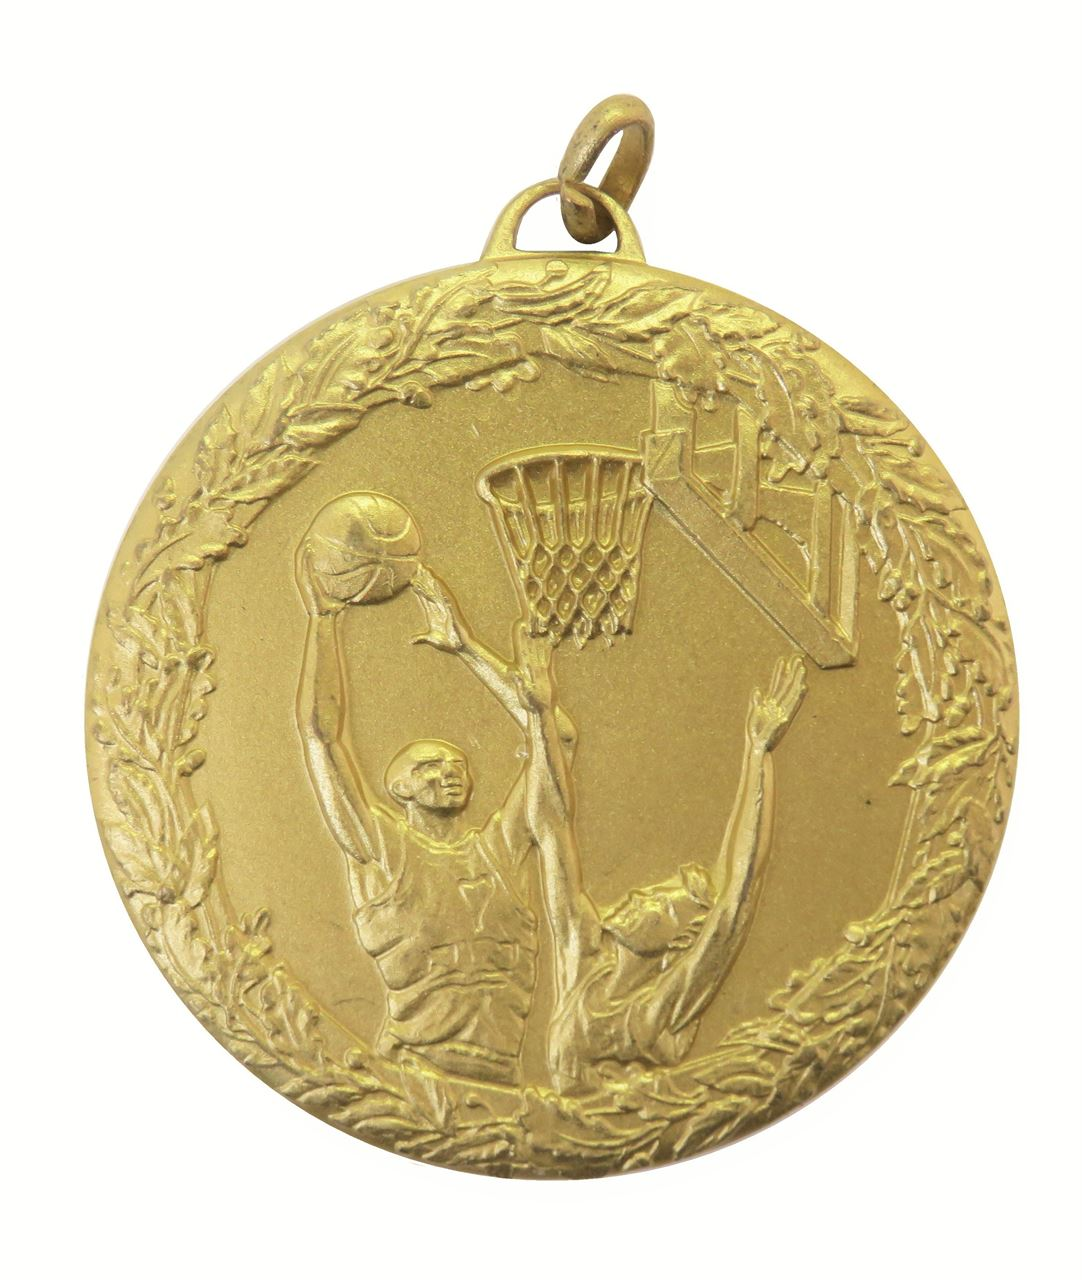 Gold Laurel Economy Basketball Jump Medal (size: 50mm) - 5415E